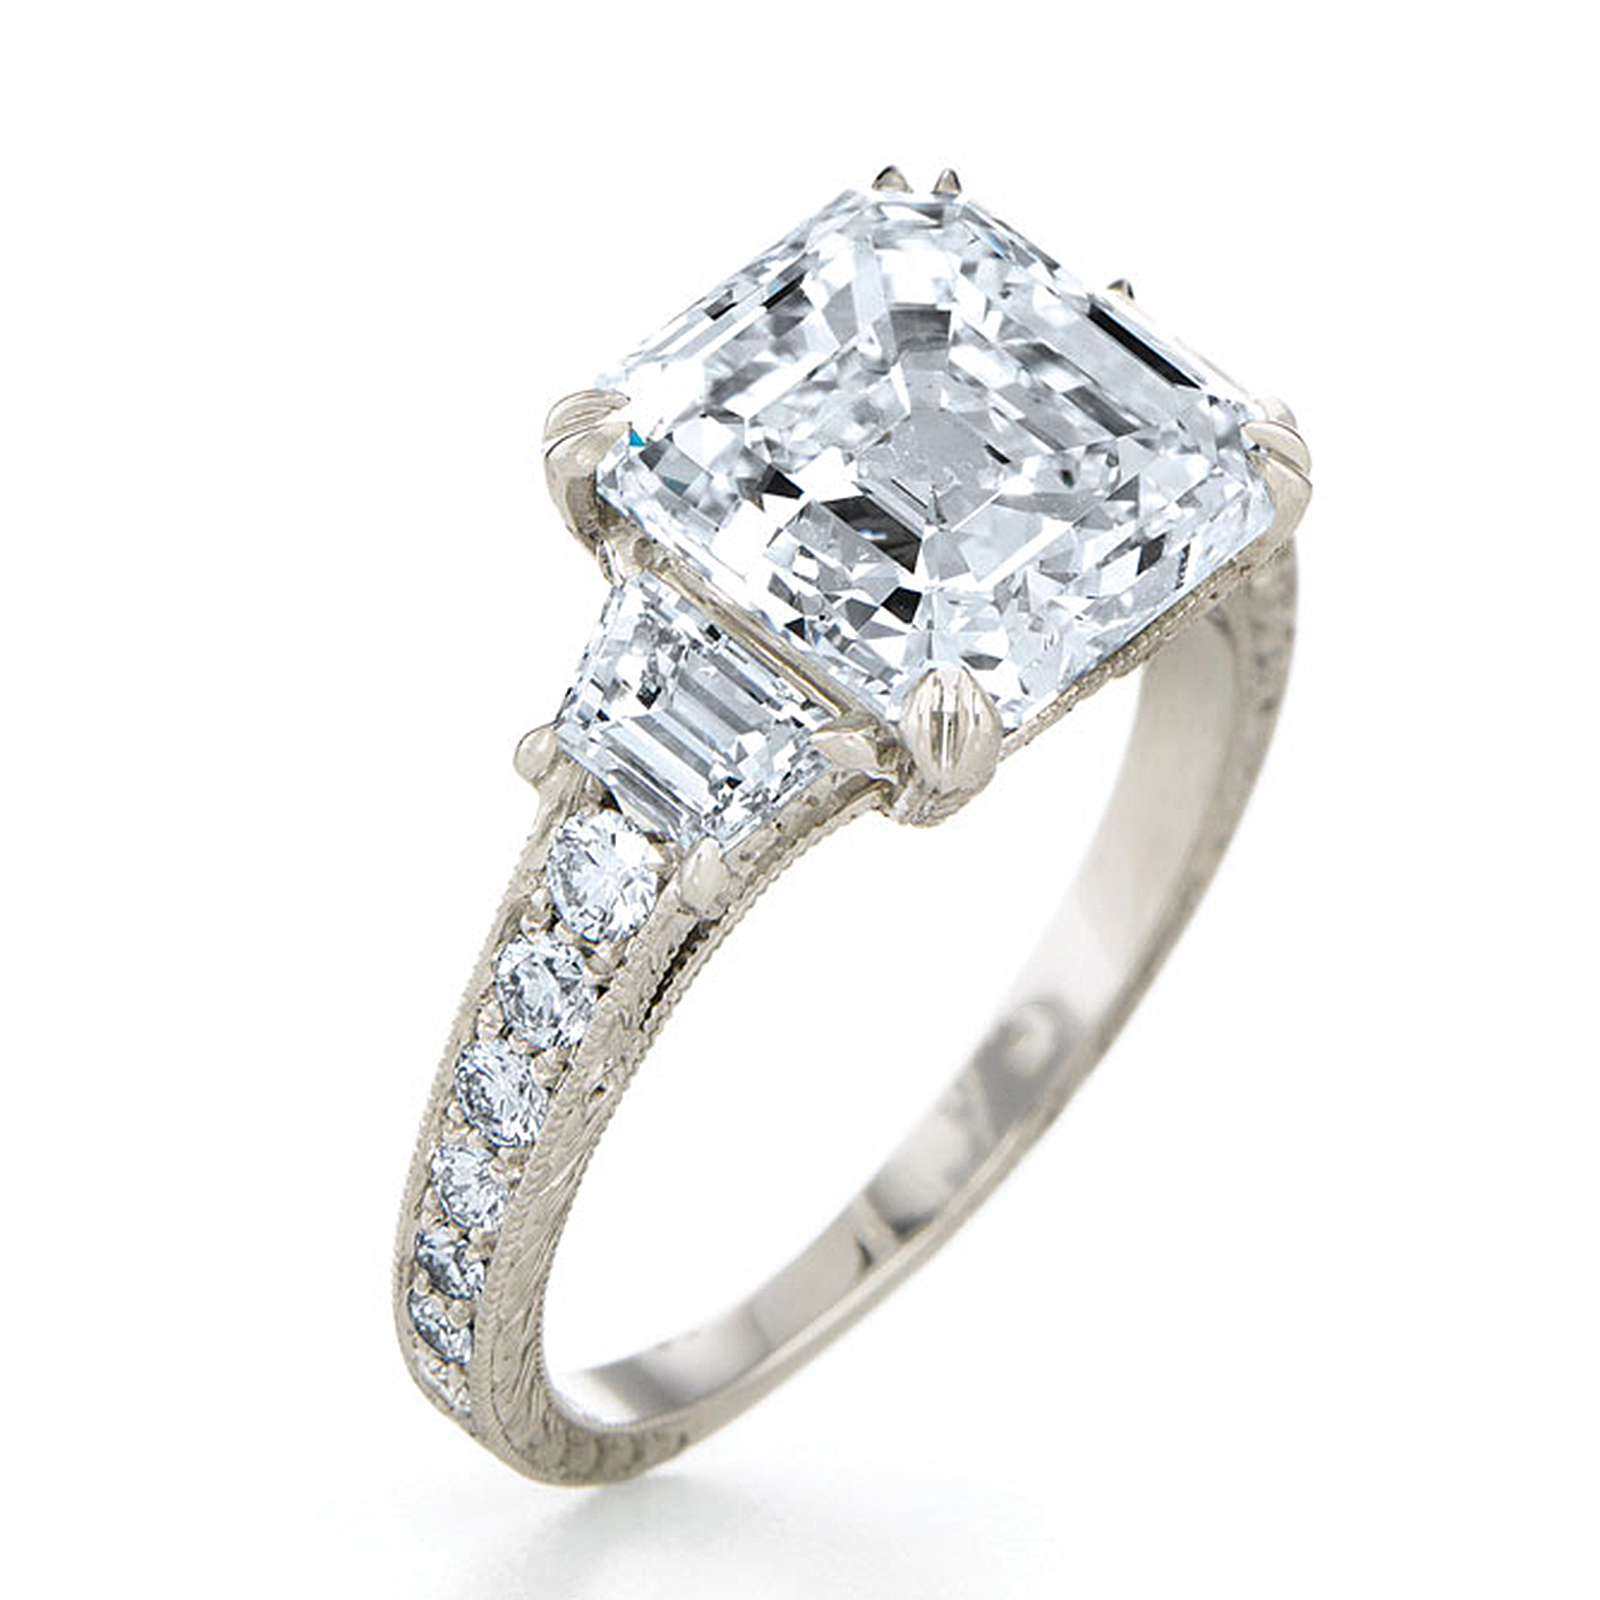 inspiration cut ring rings italy wedding engagement on in picture guard with and files finger of styles asscher awesome